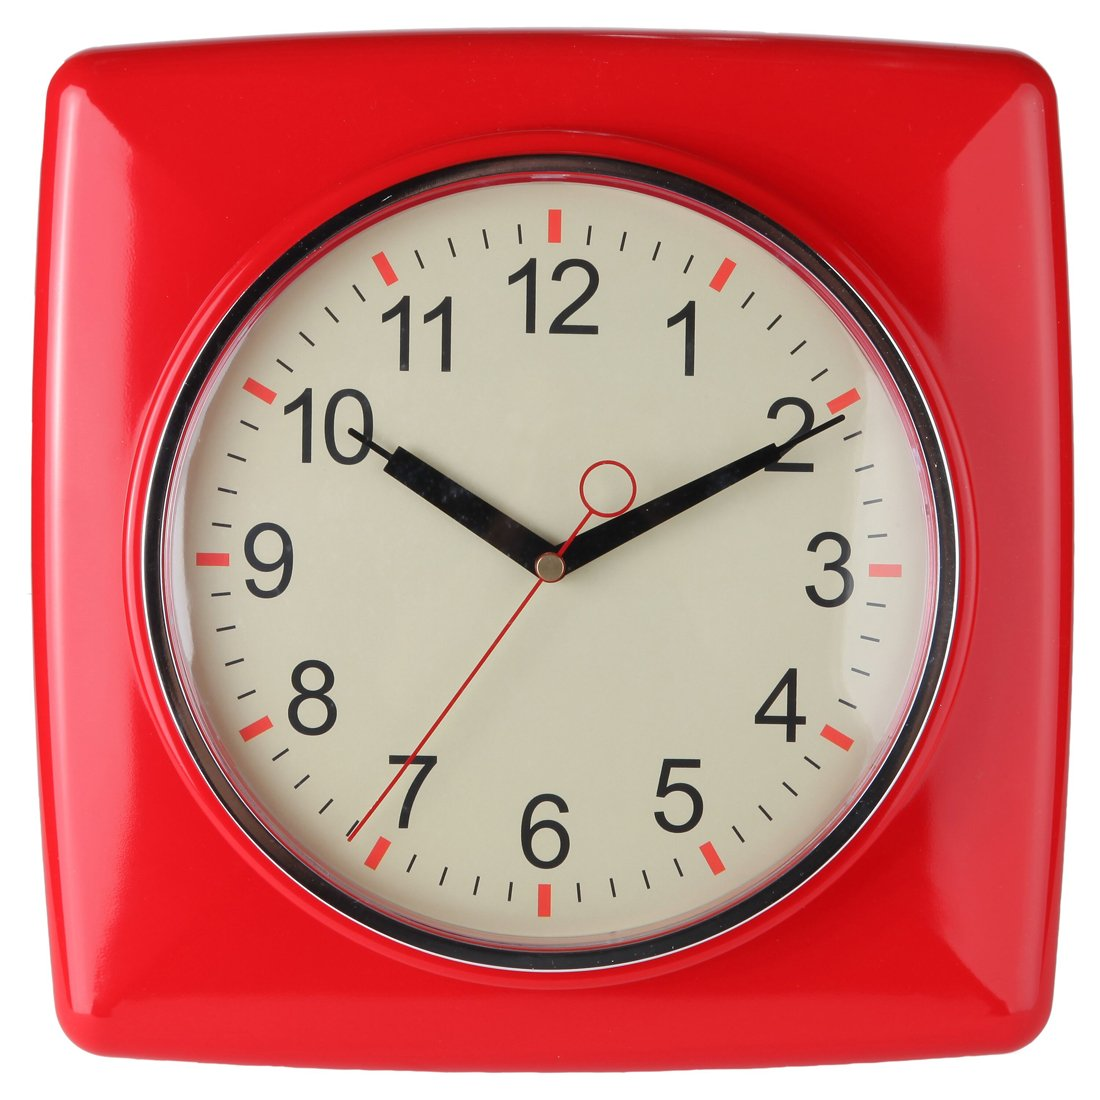 Lily S Home Square Retro Kitchen Wall Clock Large Dial